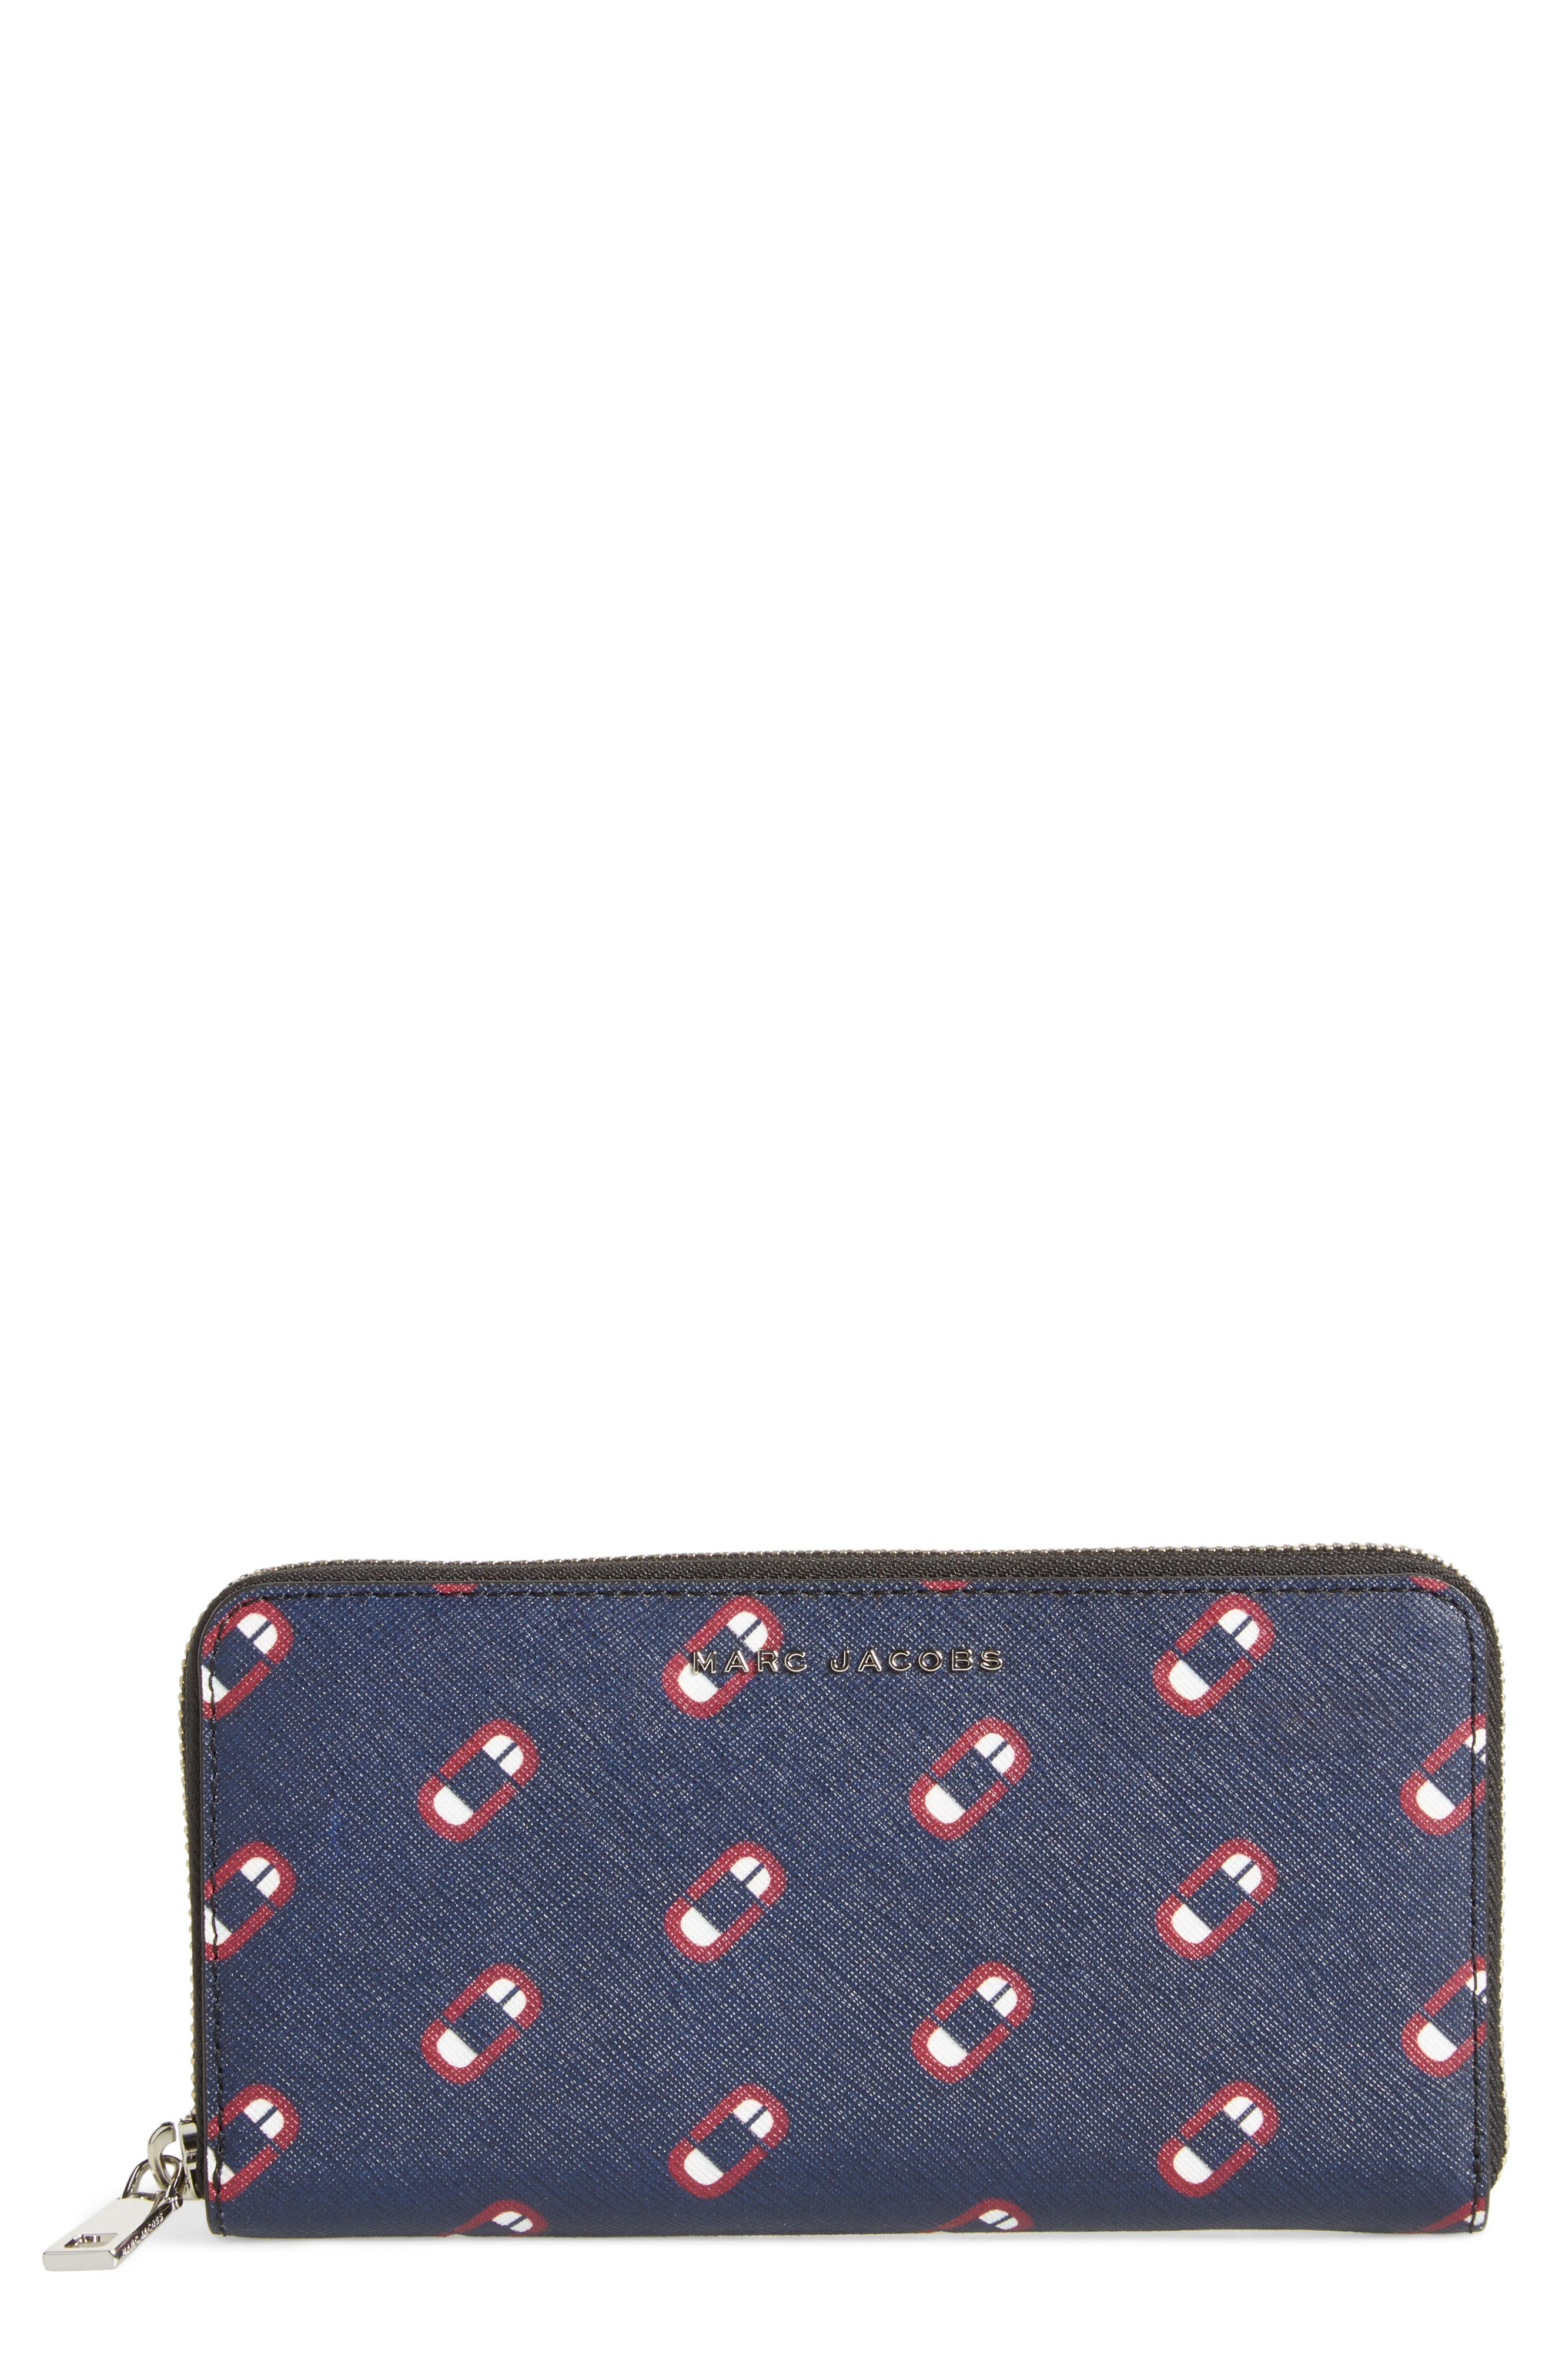 MARC JACOBS Scream Saffiano Leather Continental Wallet